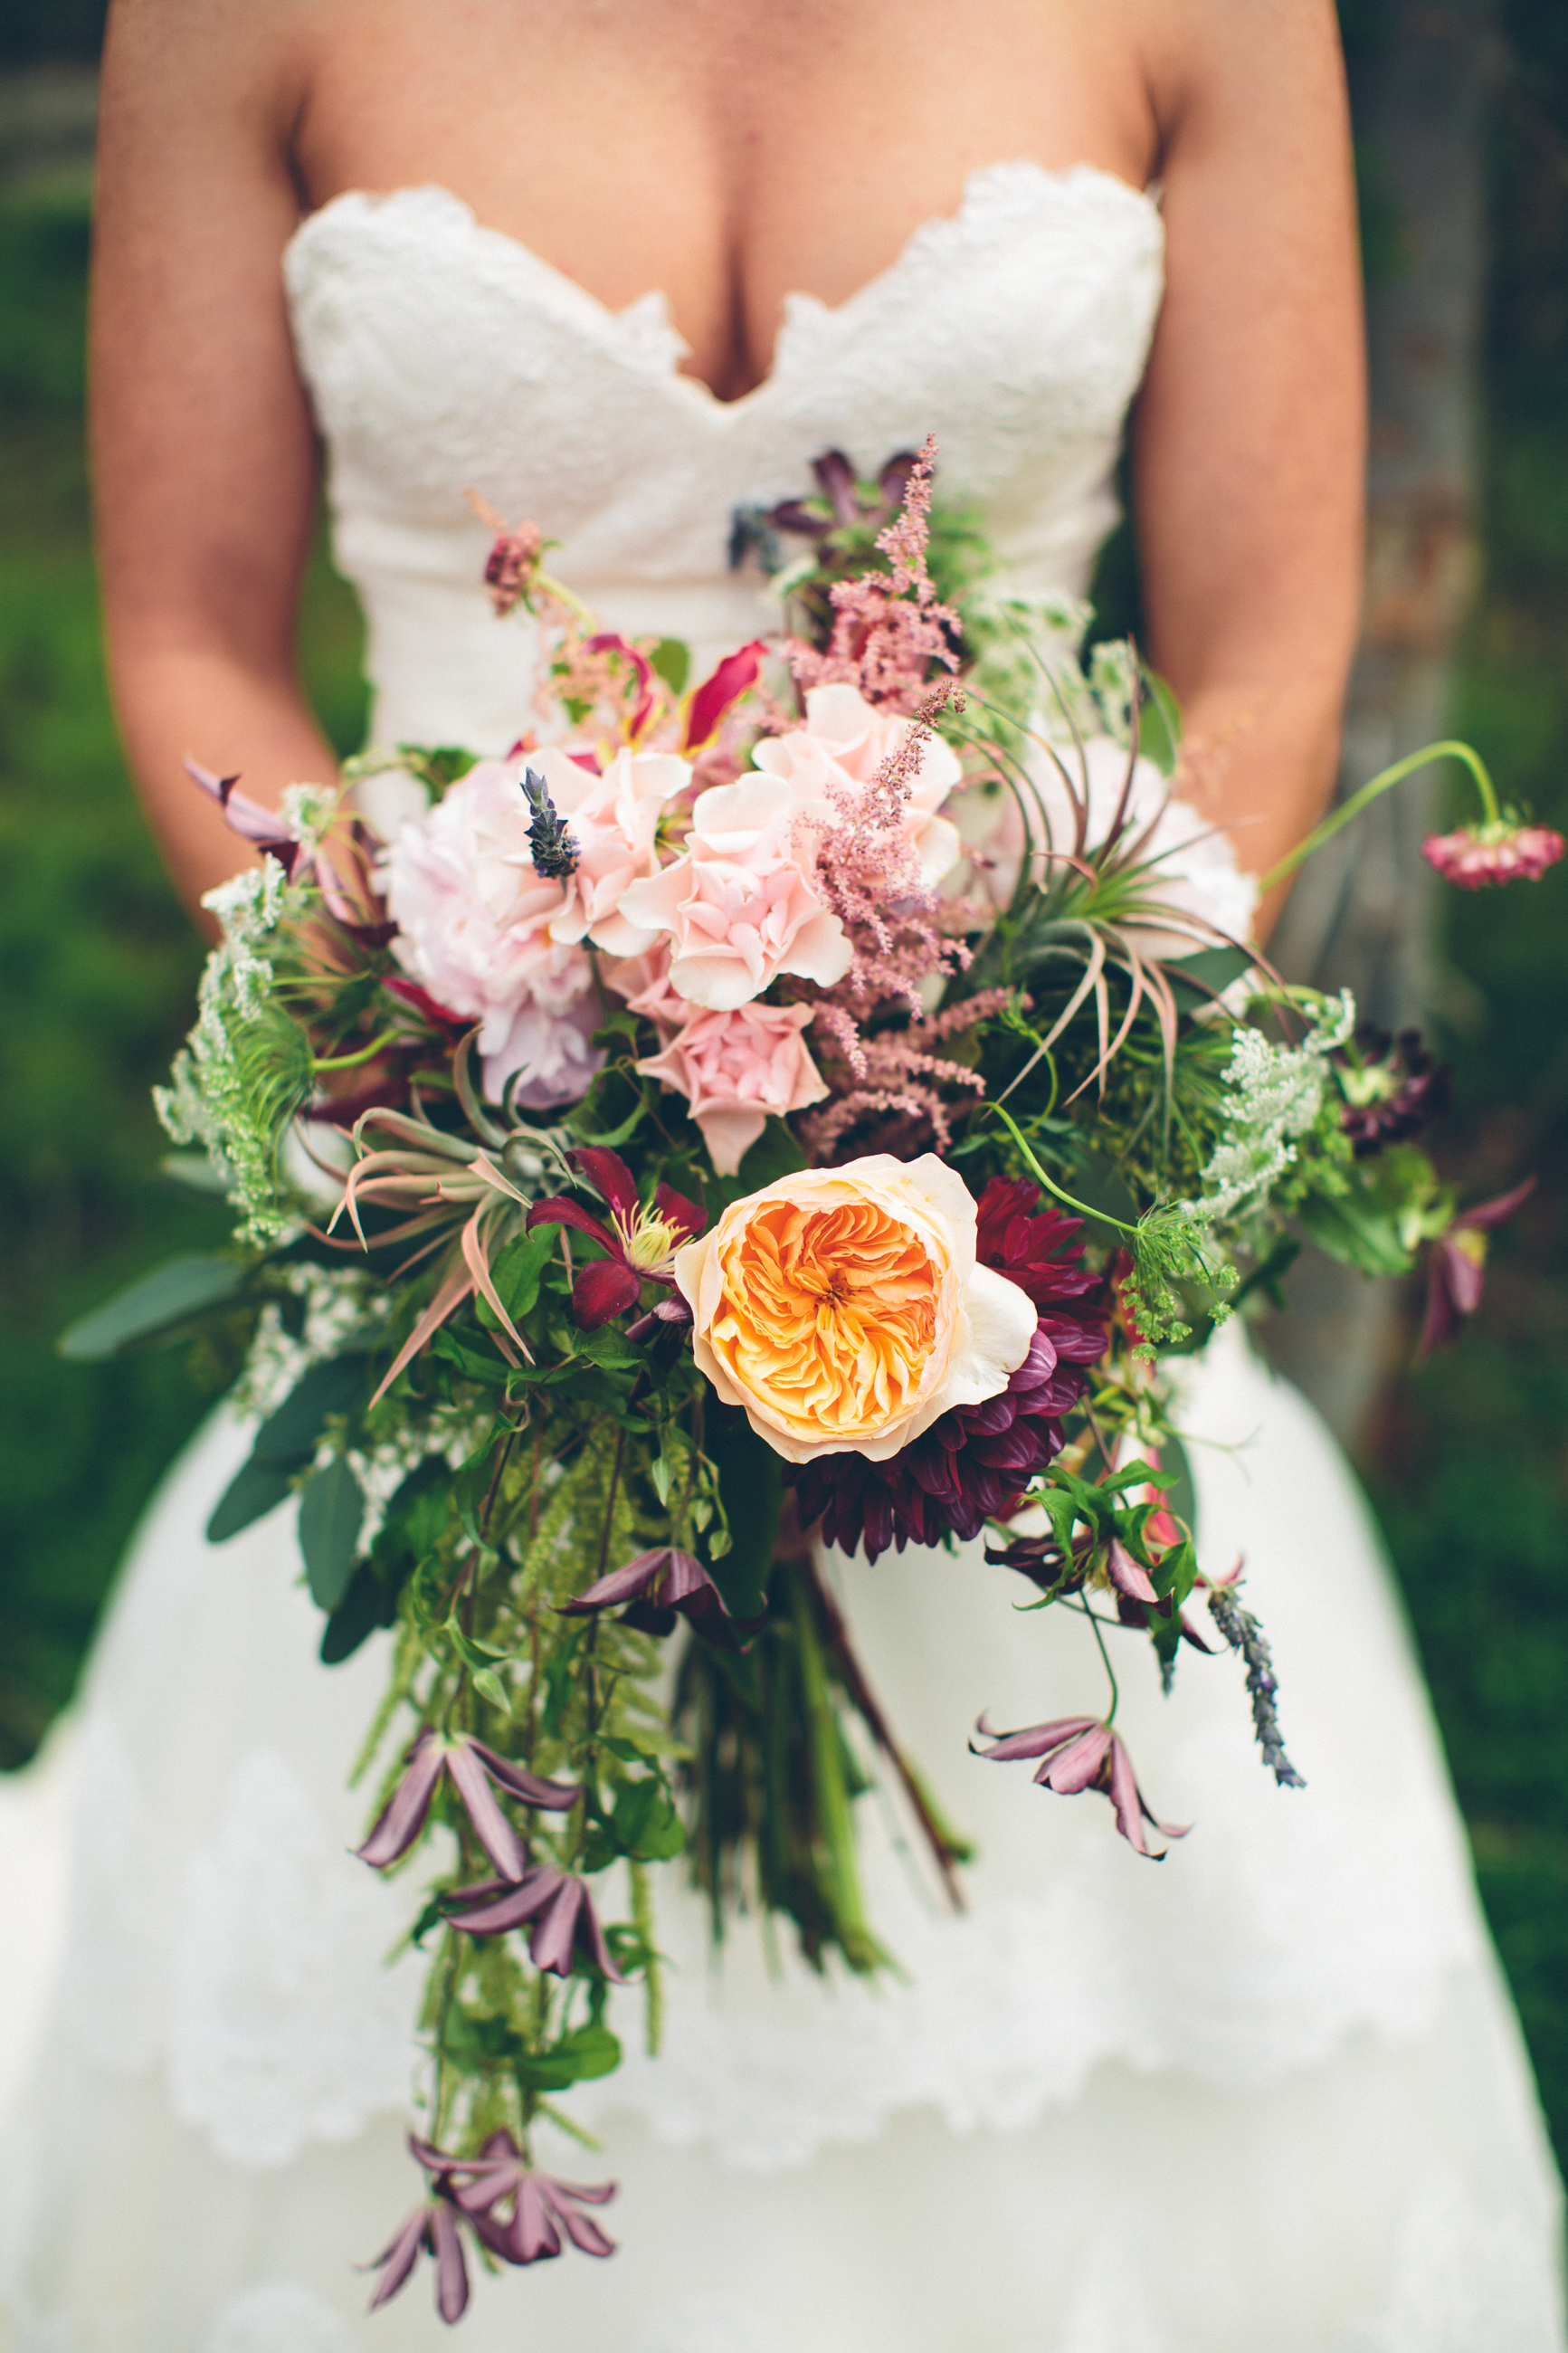 Flowers By Lace and Lilies - Woodlands Wedding - Rustic Wedding - Air Plant Bouquet - Wild Flower Bouquet